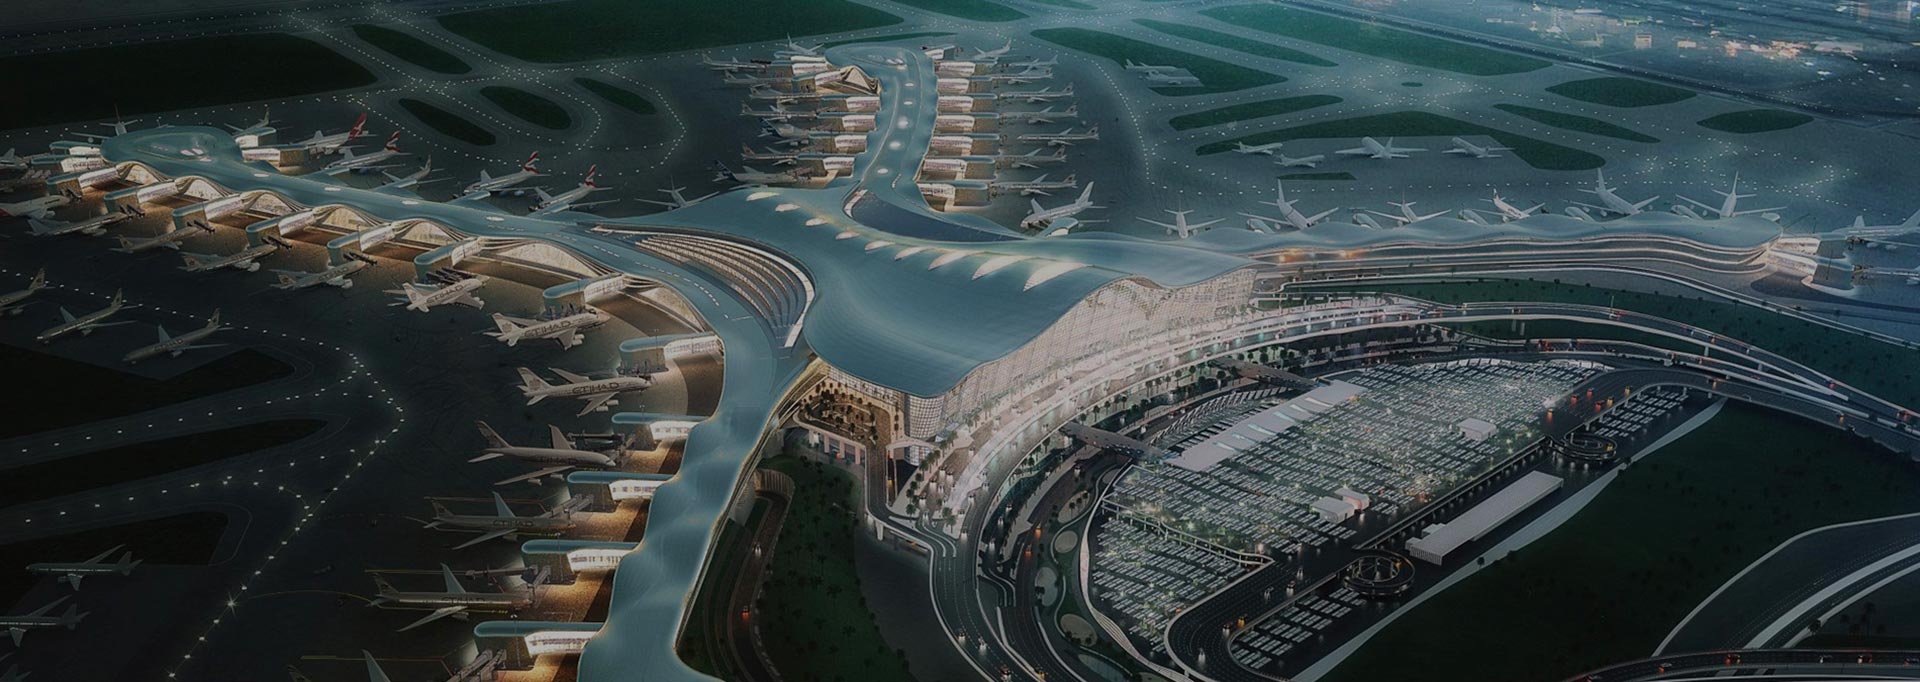 Abu Dhabi International Airport 2